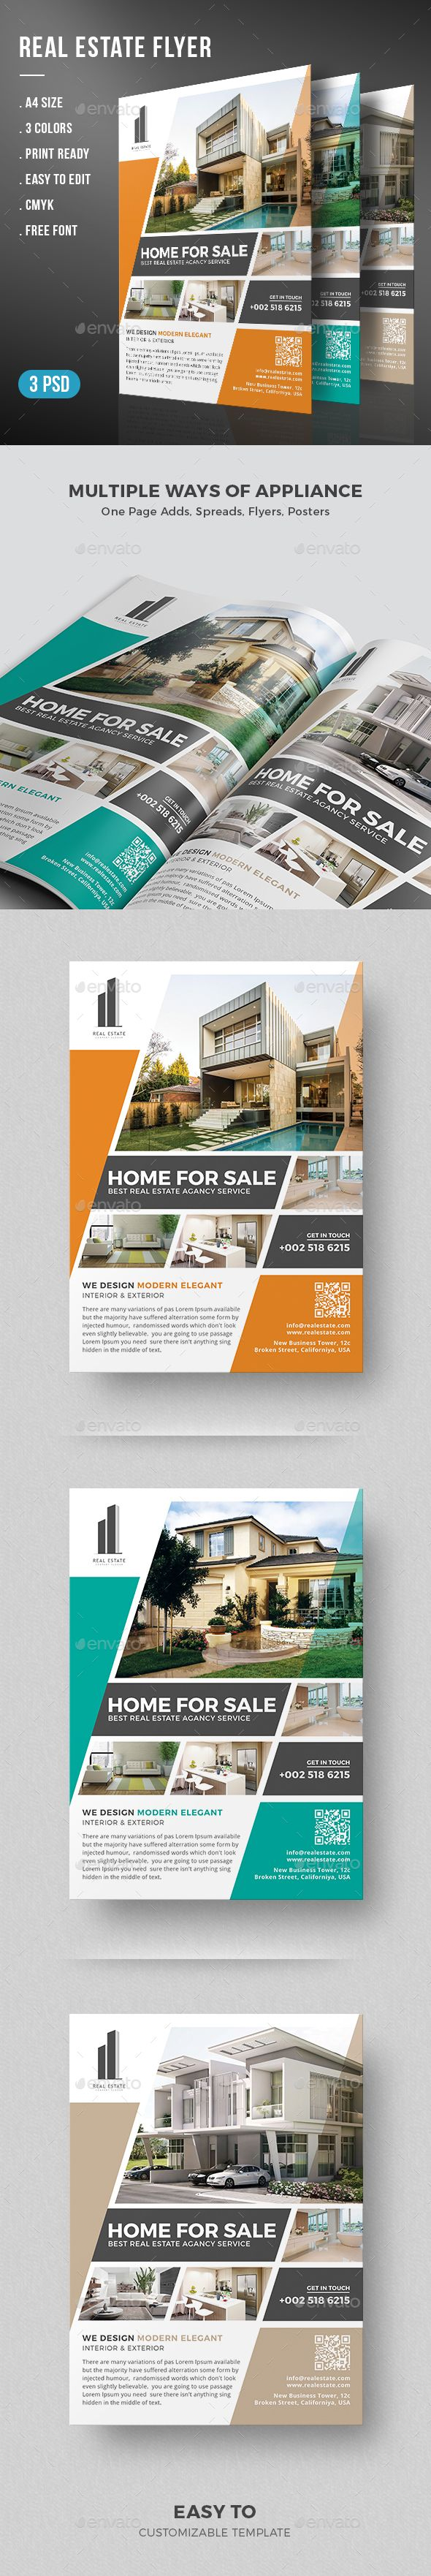 best ideas about real estate flyers real estate real estate flyer corporate flyers here graphicriver